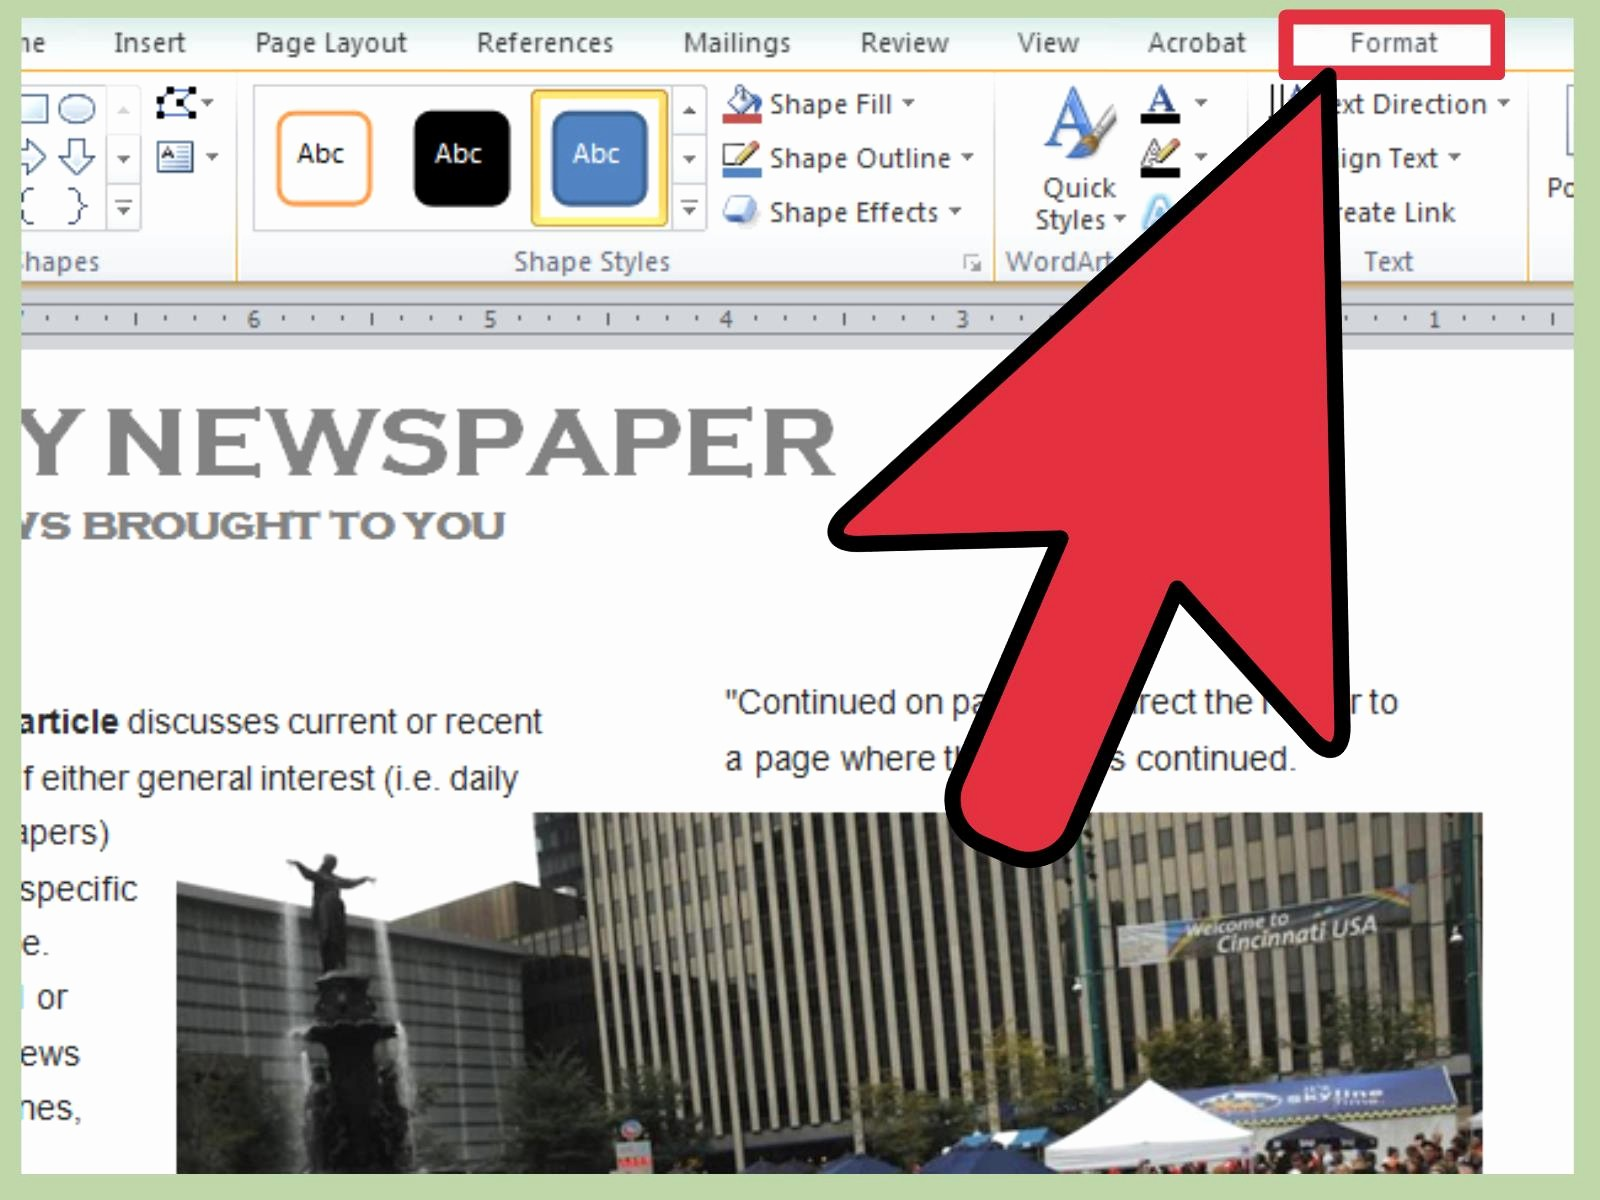 Microsoft Word Newspaper Article Template Awesome 3 Ways to Make A Newspaper On Microsoft Word Wikihow